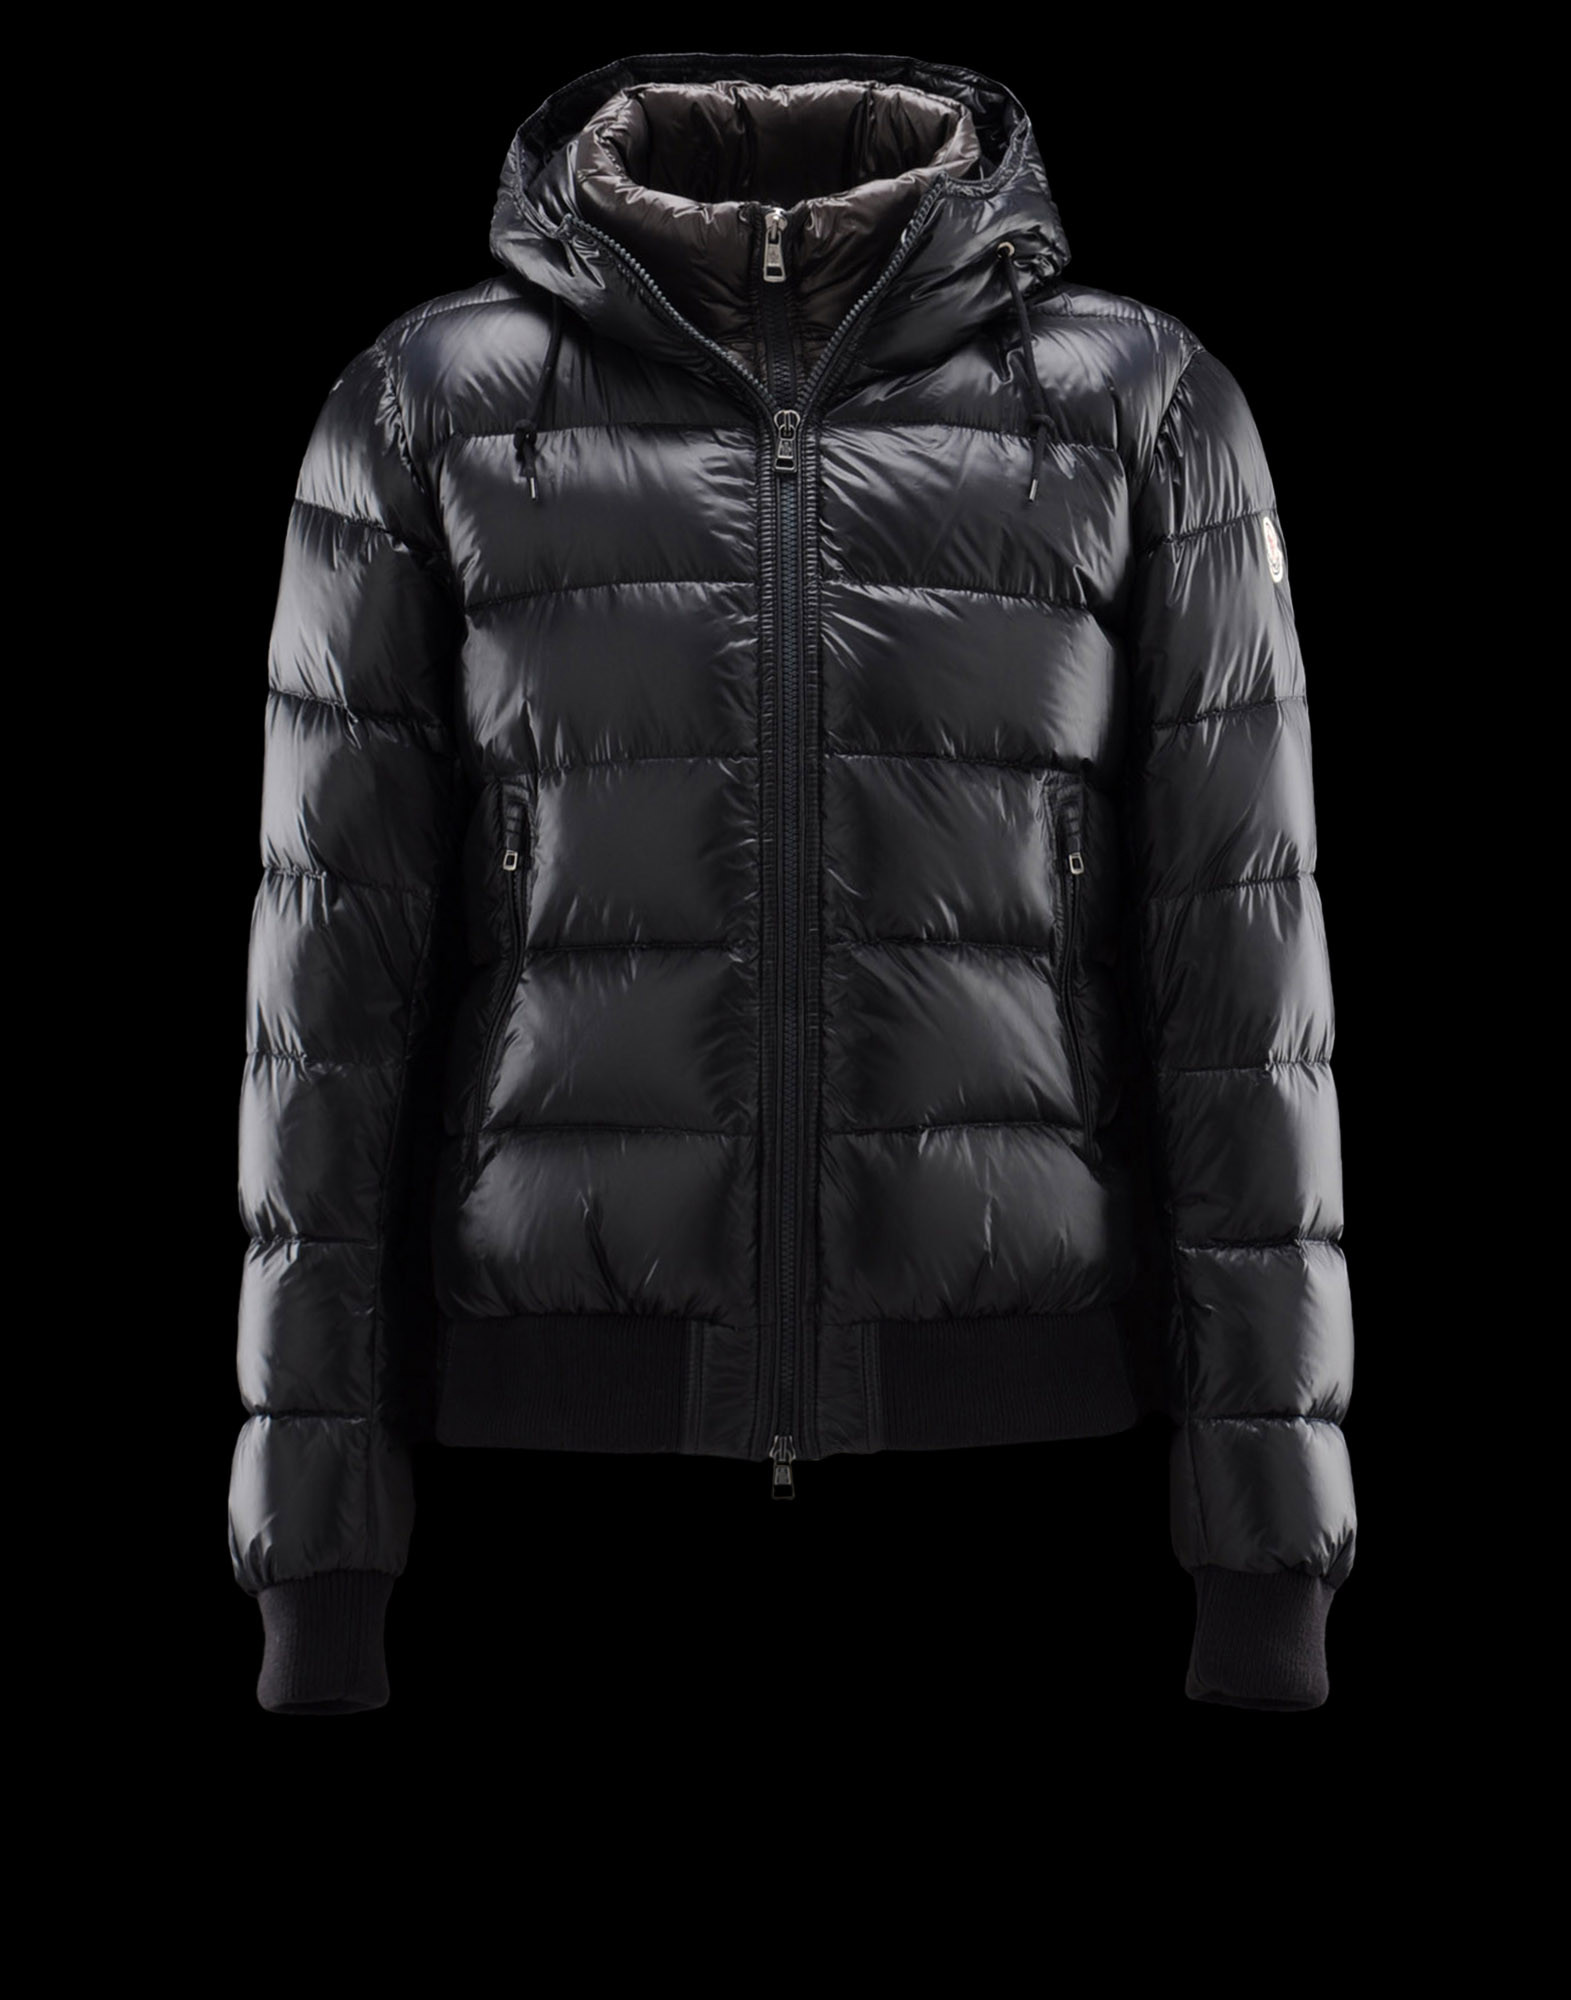 825362 Moncler Outlet Orlando Moncler Store Moncler Jacket For Women  - Moncler For Men